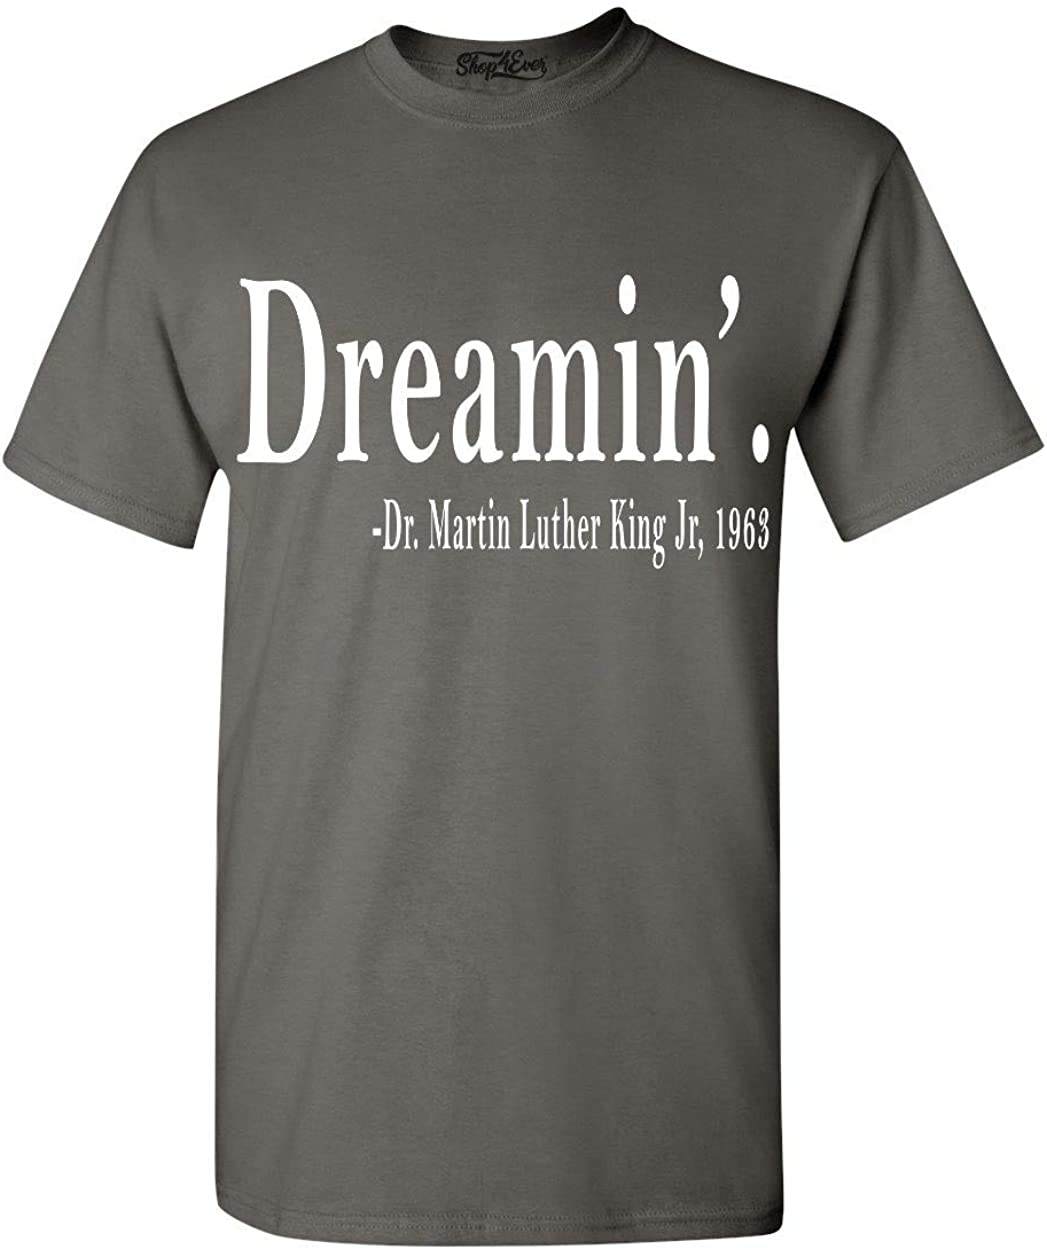 shop4ever Dreamin'. Martin Max 88% OFF Luther King Trust Jr 1963 T-Shirt